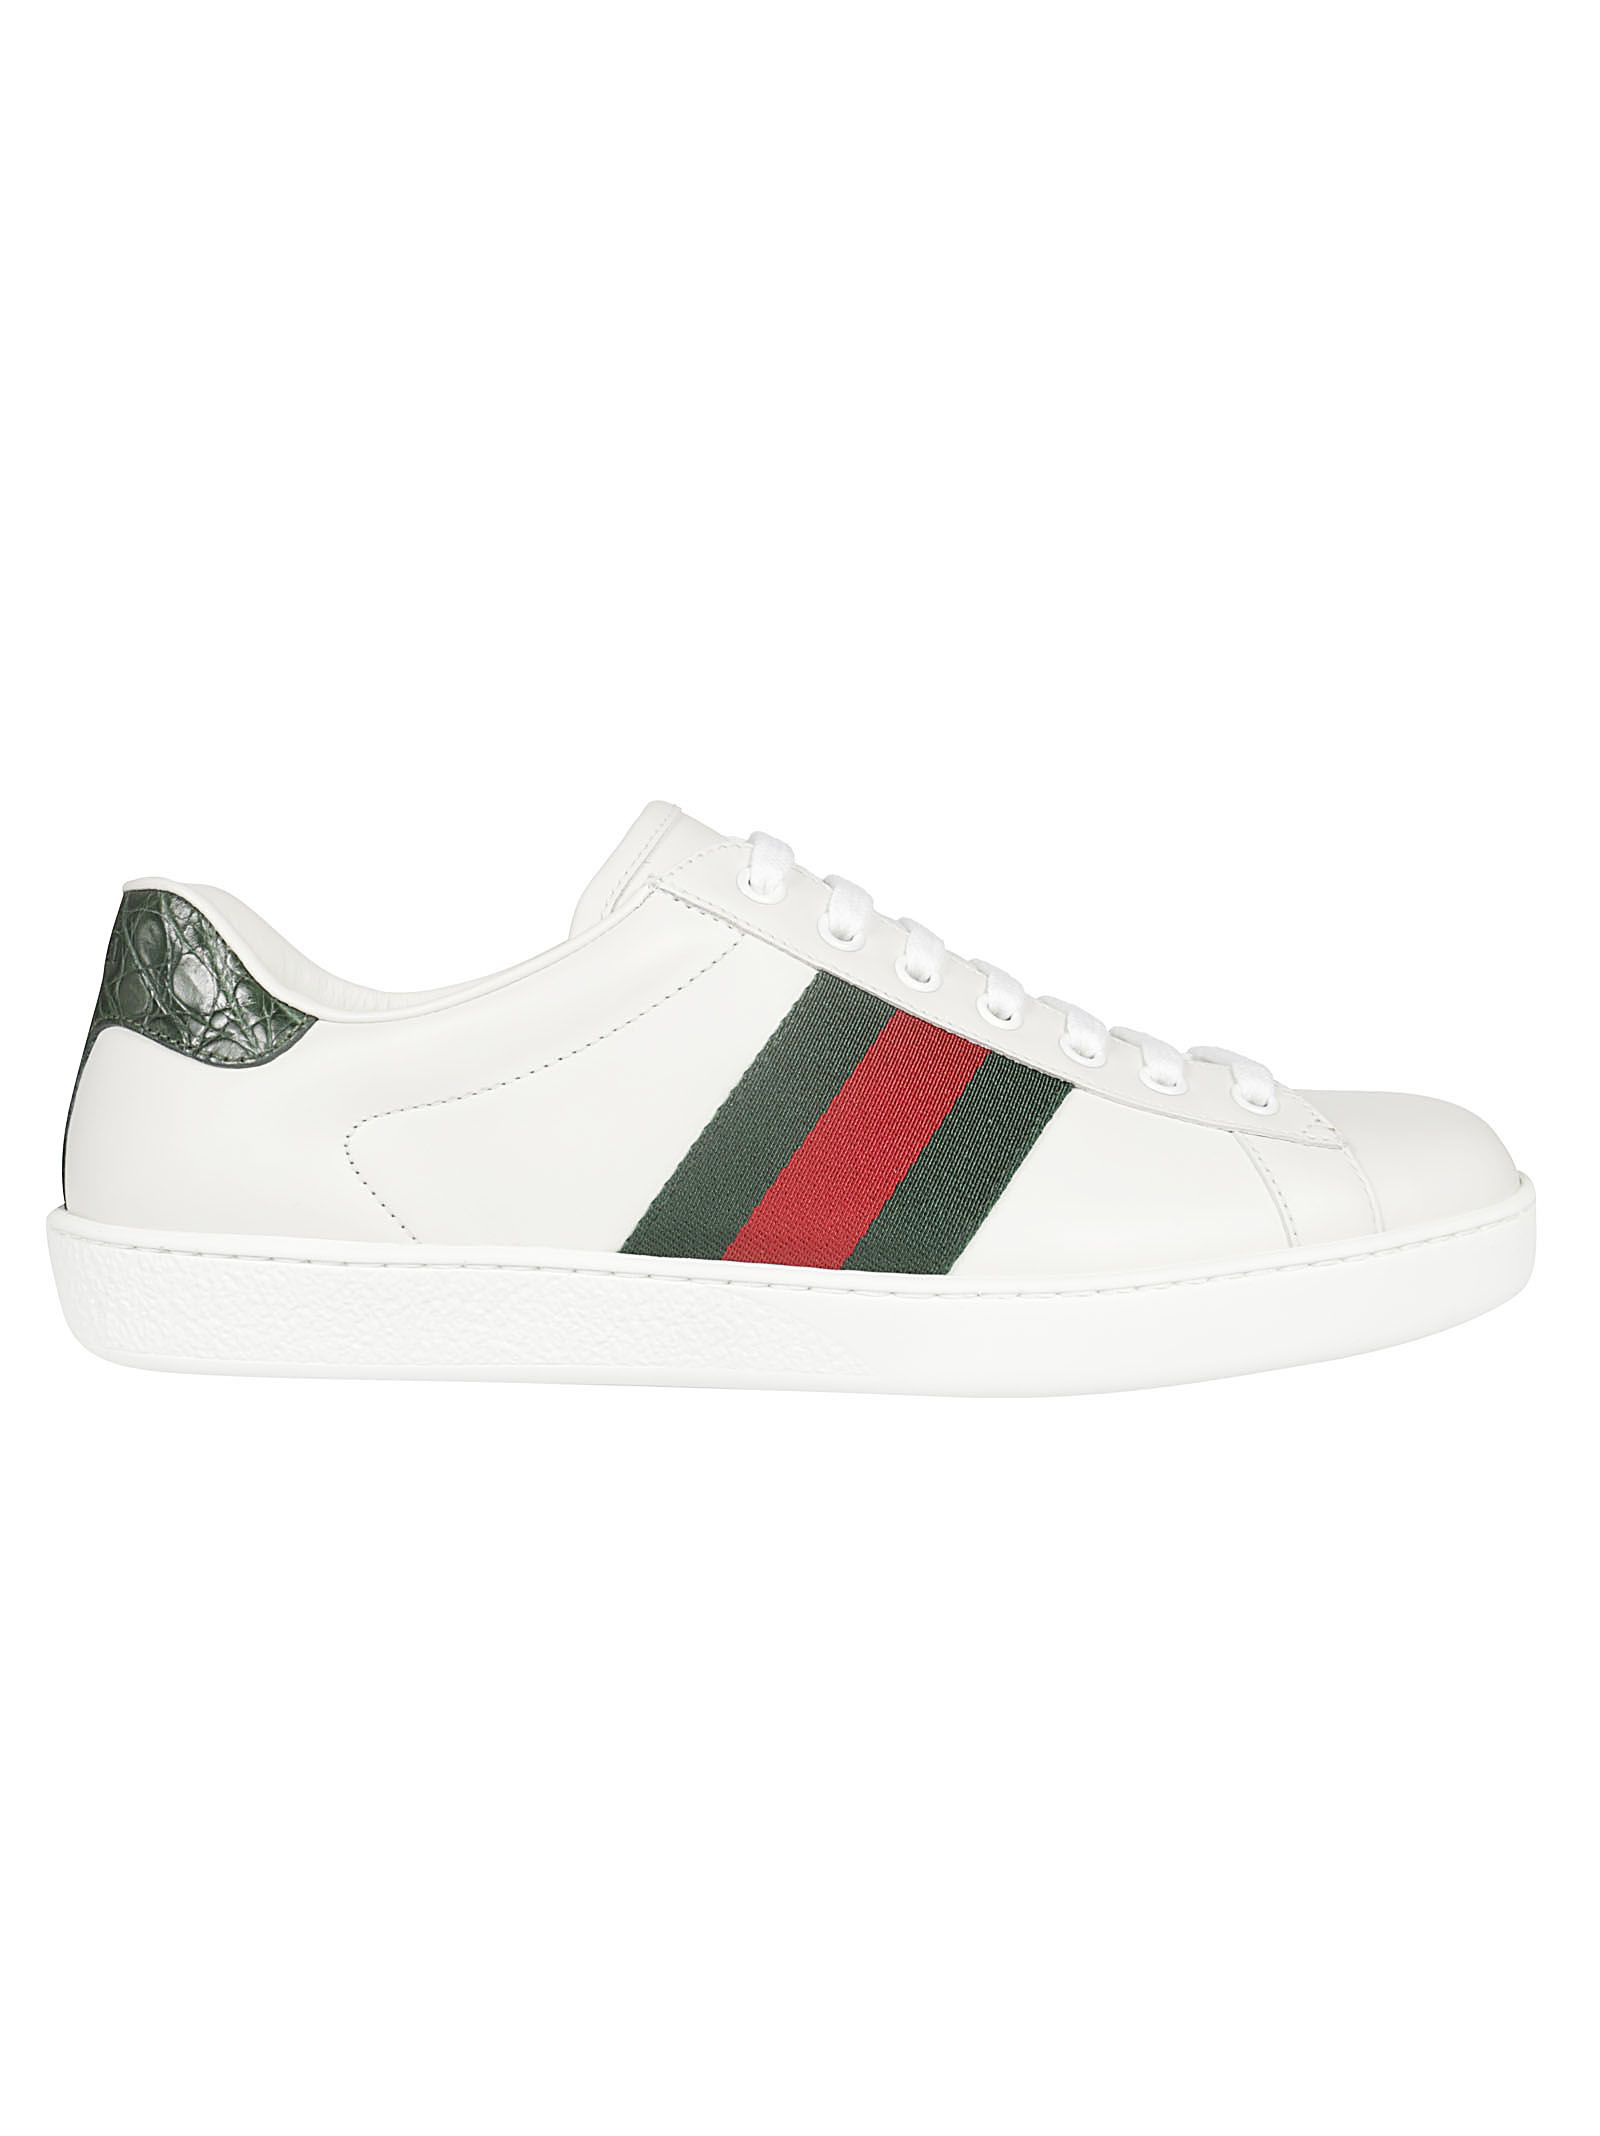 1ccbfb63e5b Gucci Men s New Ace Leather Low-Top Sneakers